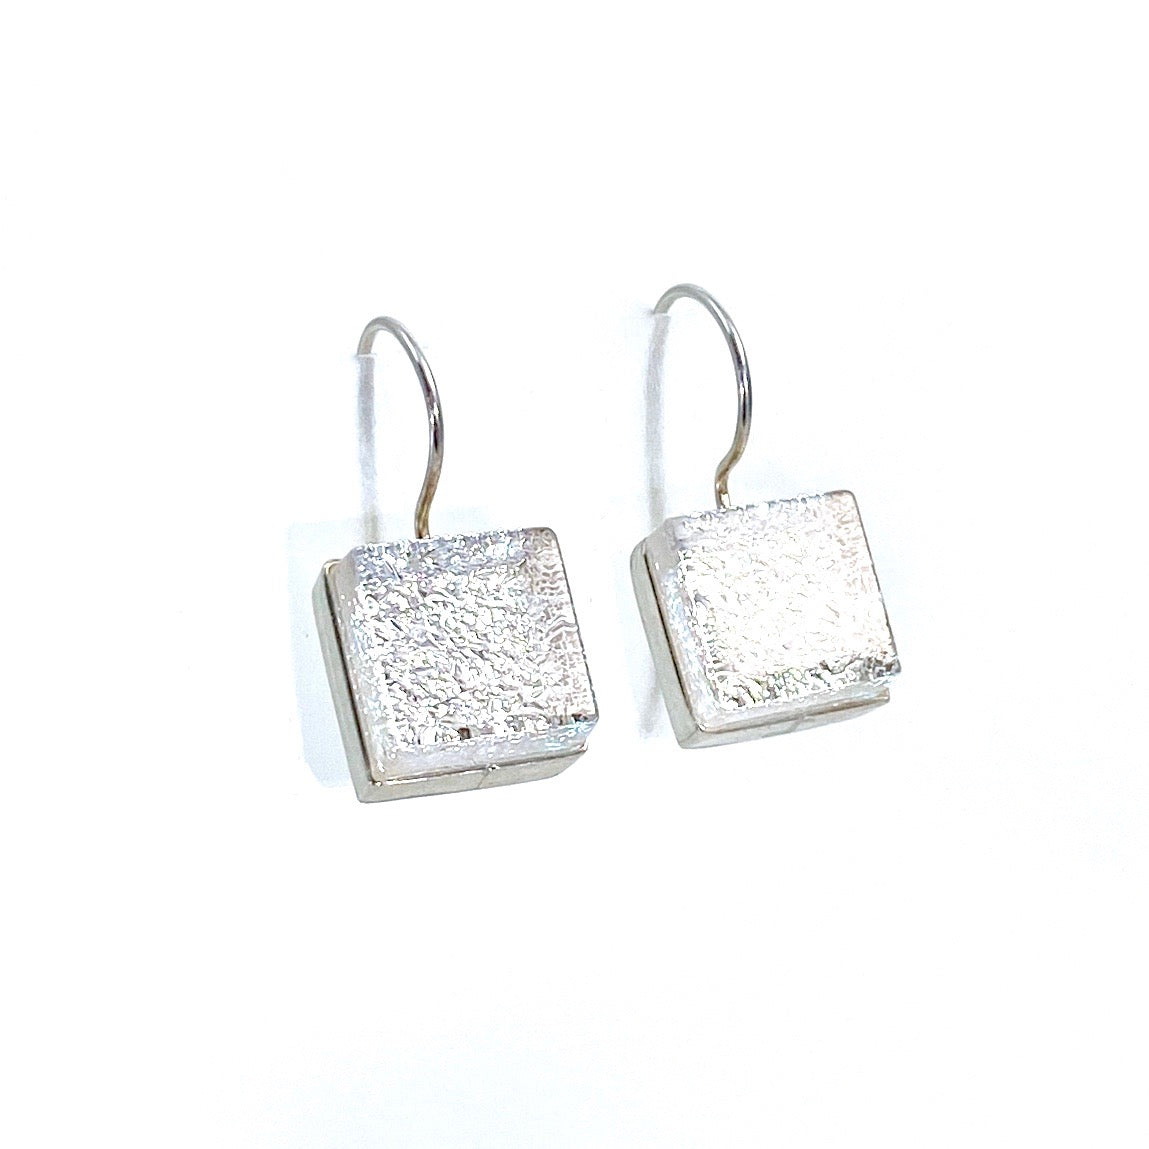 pearl, white, square earrings, fused glass, glass jewelry, glass and silver jewelry, handmade, handcrafted, American Craft, hand fabricated jewelry, hand fabricated jewellery,  Athen, Georgia, colorful jewelry, sparkle, bullseye glass, dichroic glass, art jewelry